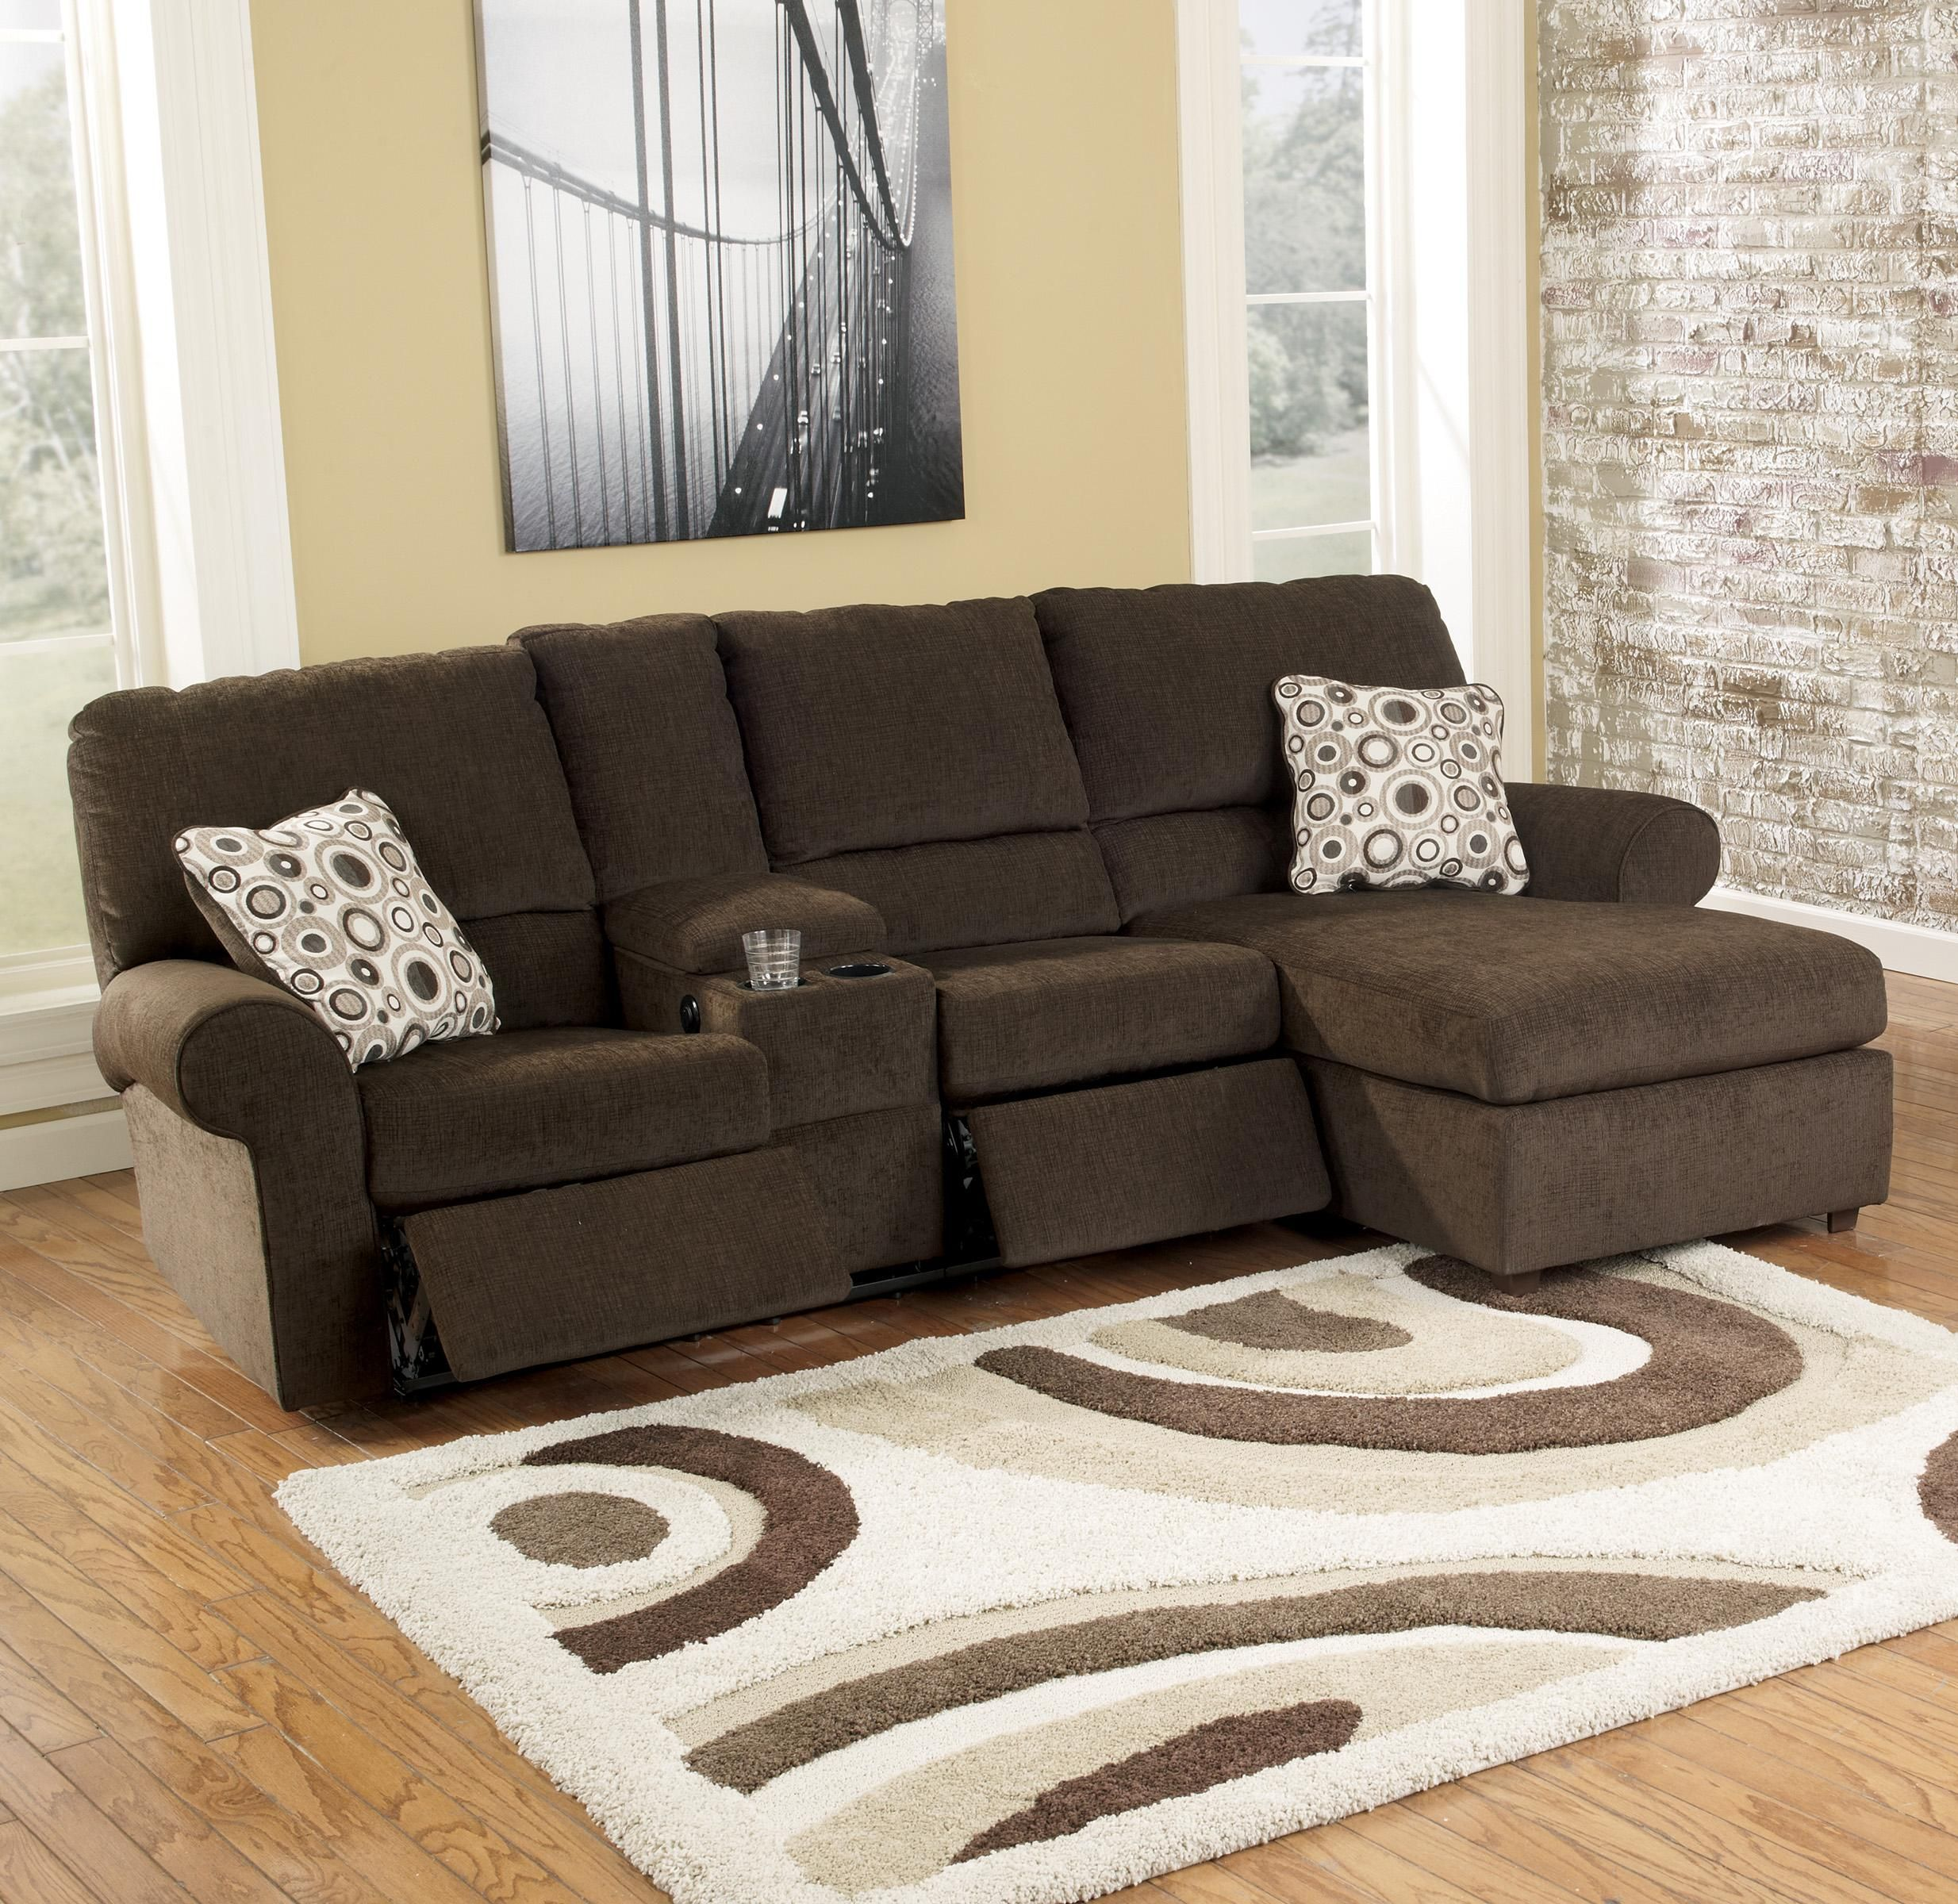 Signature Design by Ashley Cybertrack - Chocolate Reclining Sectional with Power Double Reclining Loveseat w/ Console u0026 Press Back Chaise - Michaelu0027s ... & Signature Design by Ashley Cybertrack - Chocolate Power Reclining ... islam-shia.org